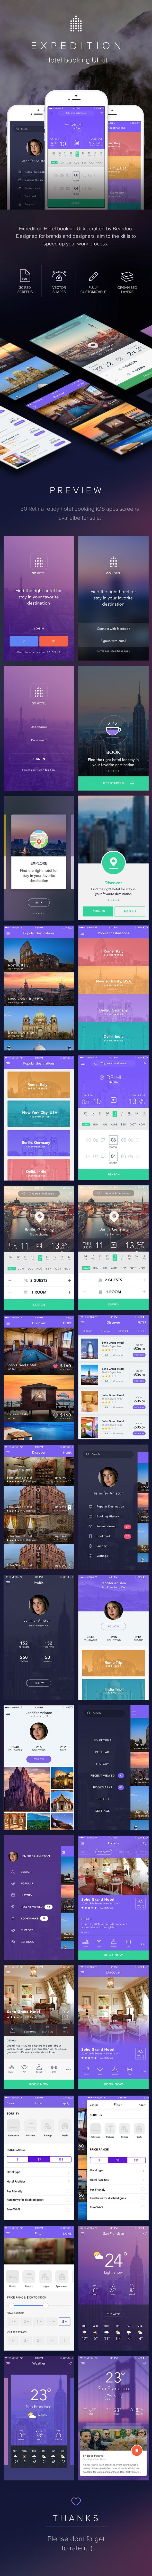 Extremely Helpful Apps You Should Have When Travelling Expedition Hotel booking UI kit designed for brands and designers, Package includes 30 PSD screens. The whole pack is oriented on hotel/ travel segment, and it covers all the screens that you need to build a beautiful app.This UI Kit includes:• 30 PSD#8230;